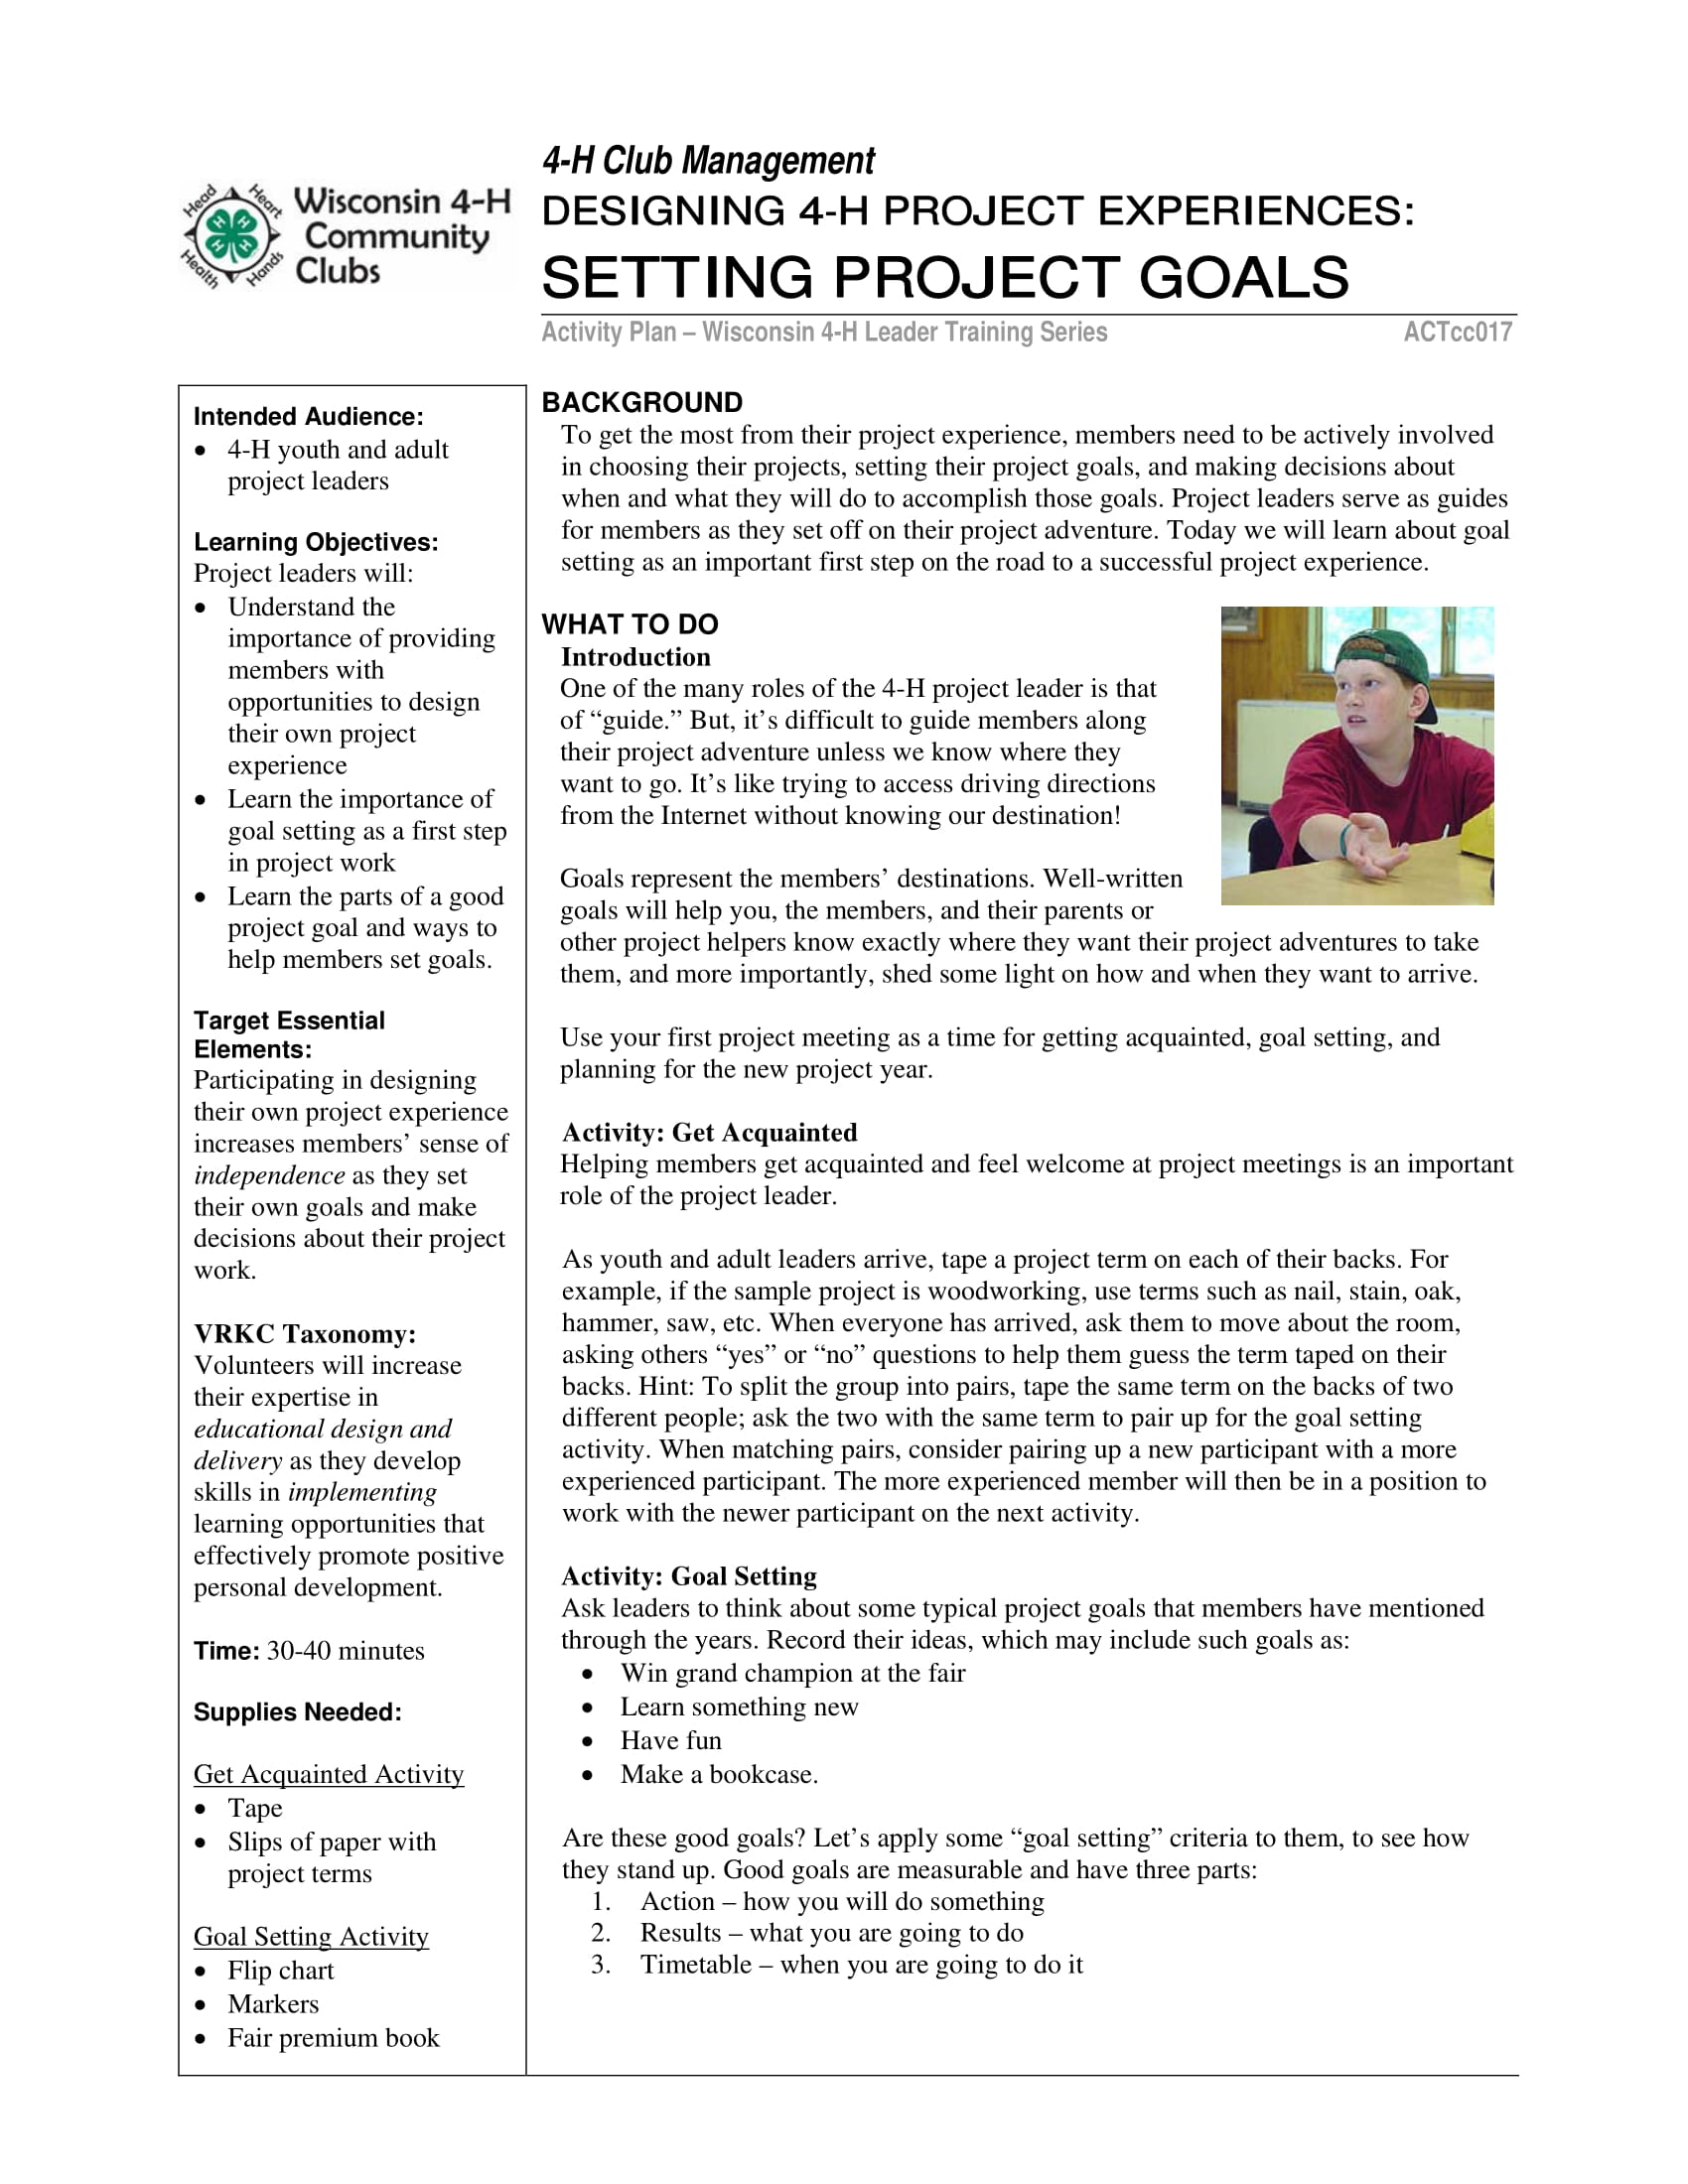 project goal setting guide example